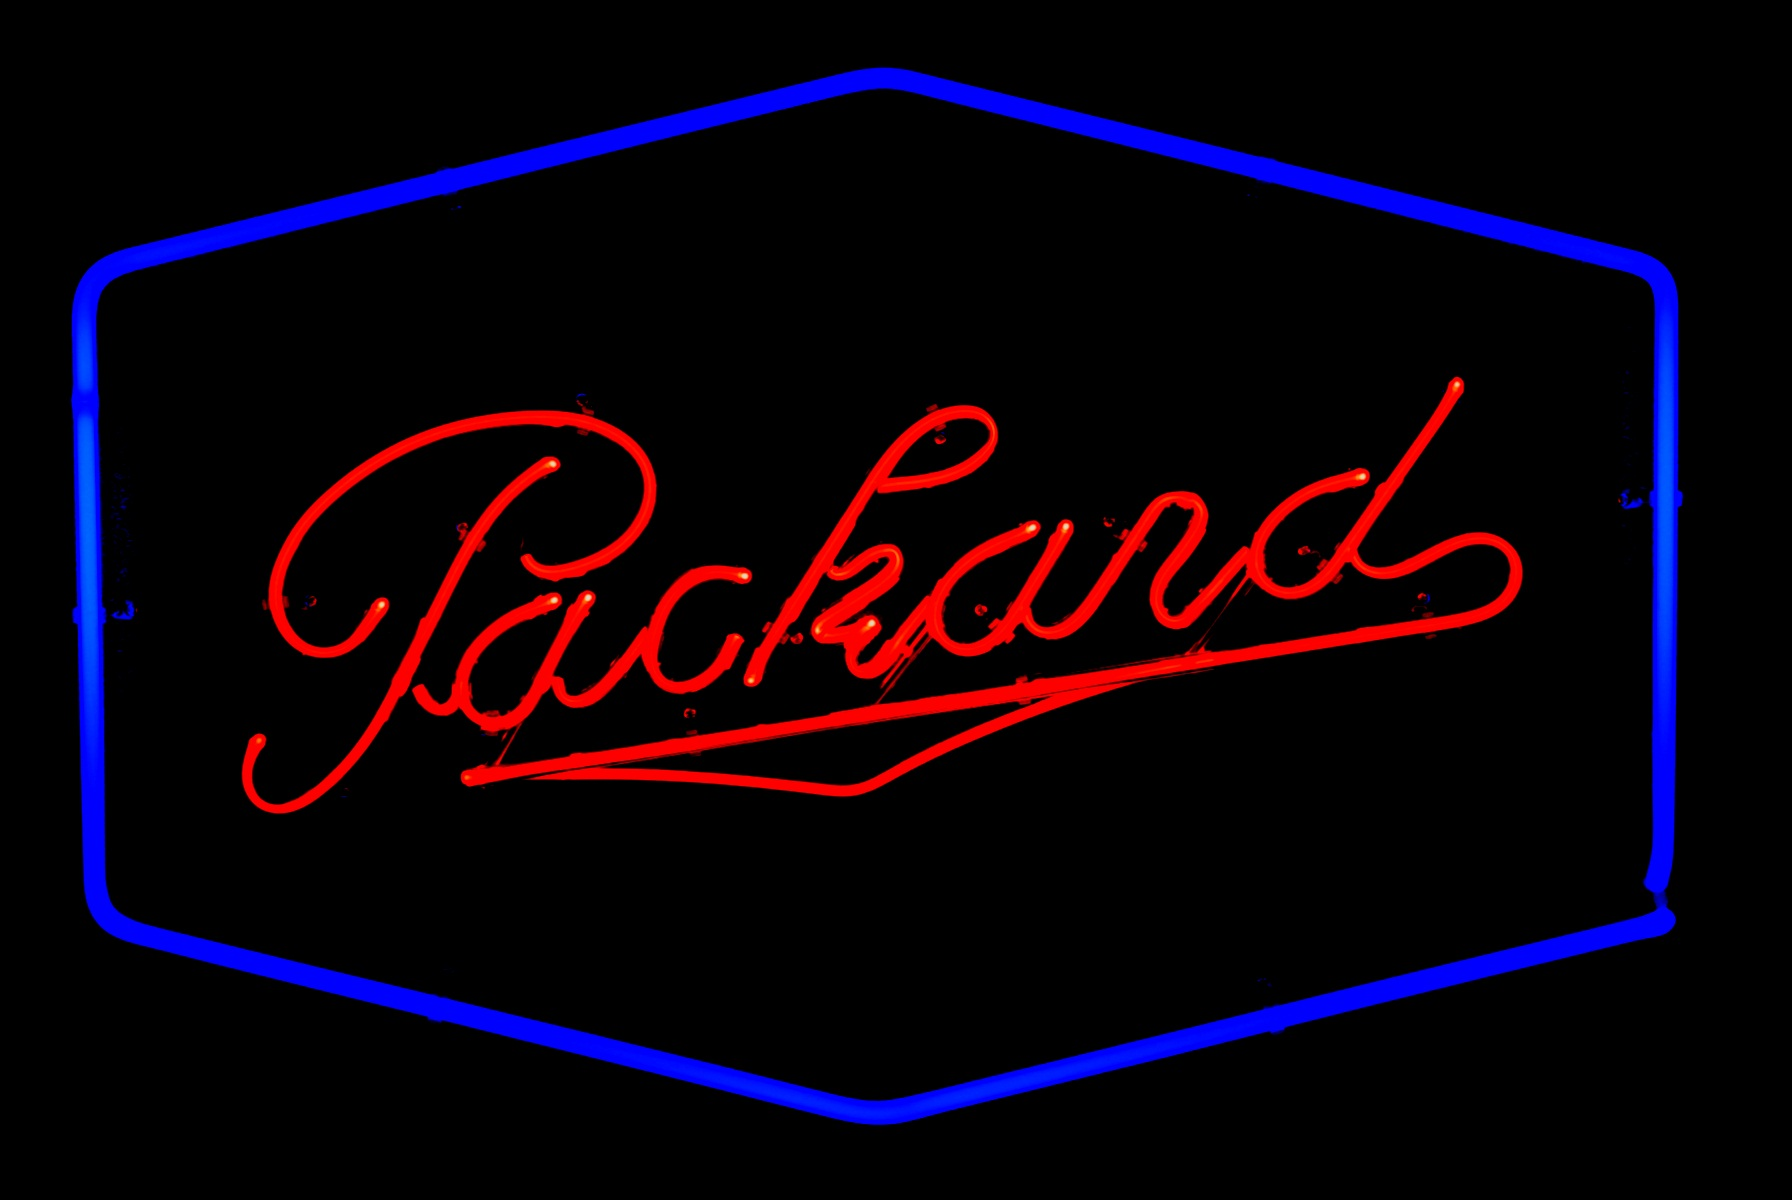 Packard Dealership Neon Signs by John Barton - former Packard New Car Dealer - BartonNeonMagic.com